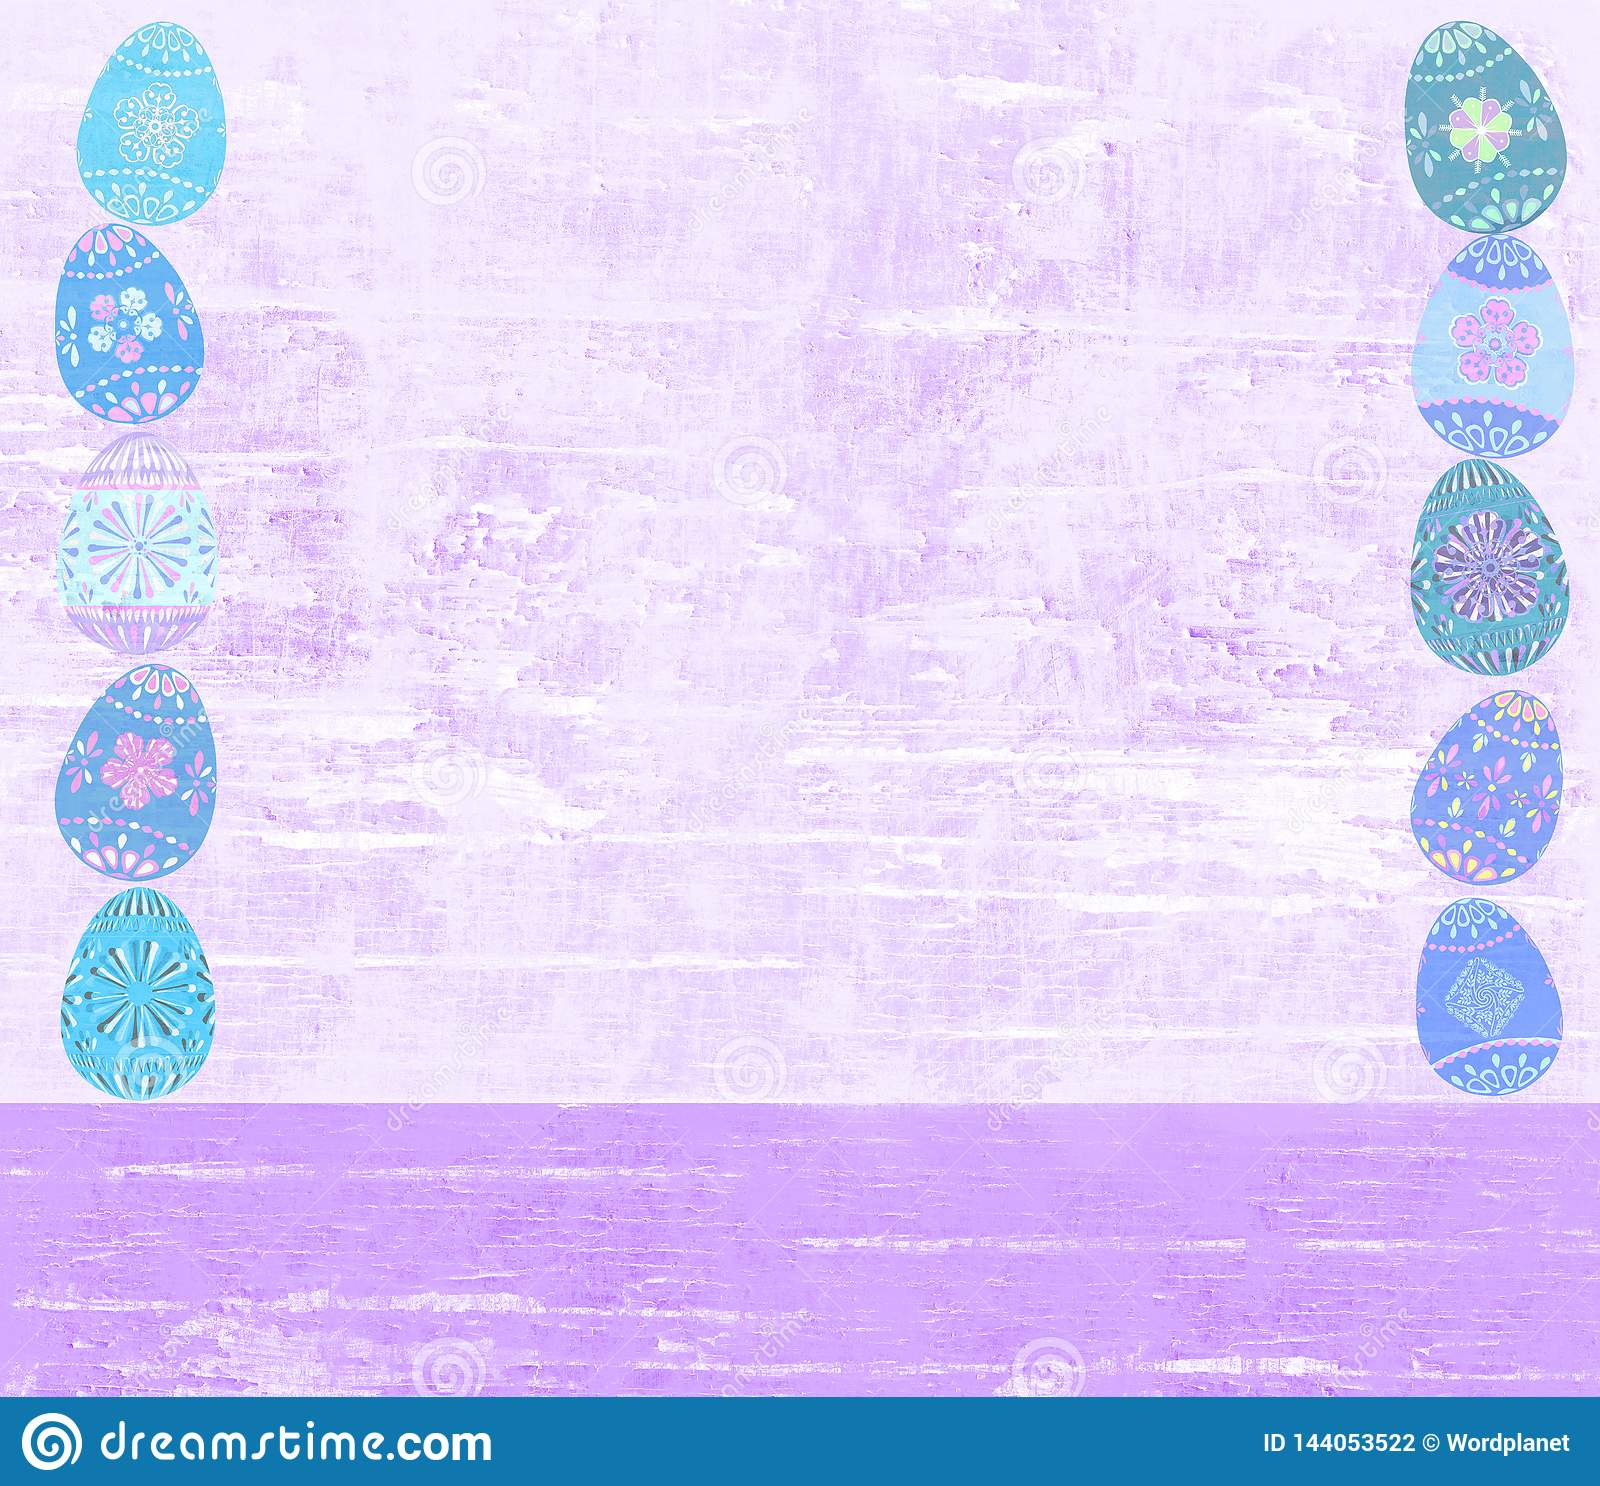 Distressed Easter egg and wood textured violet background